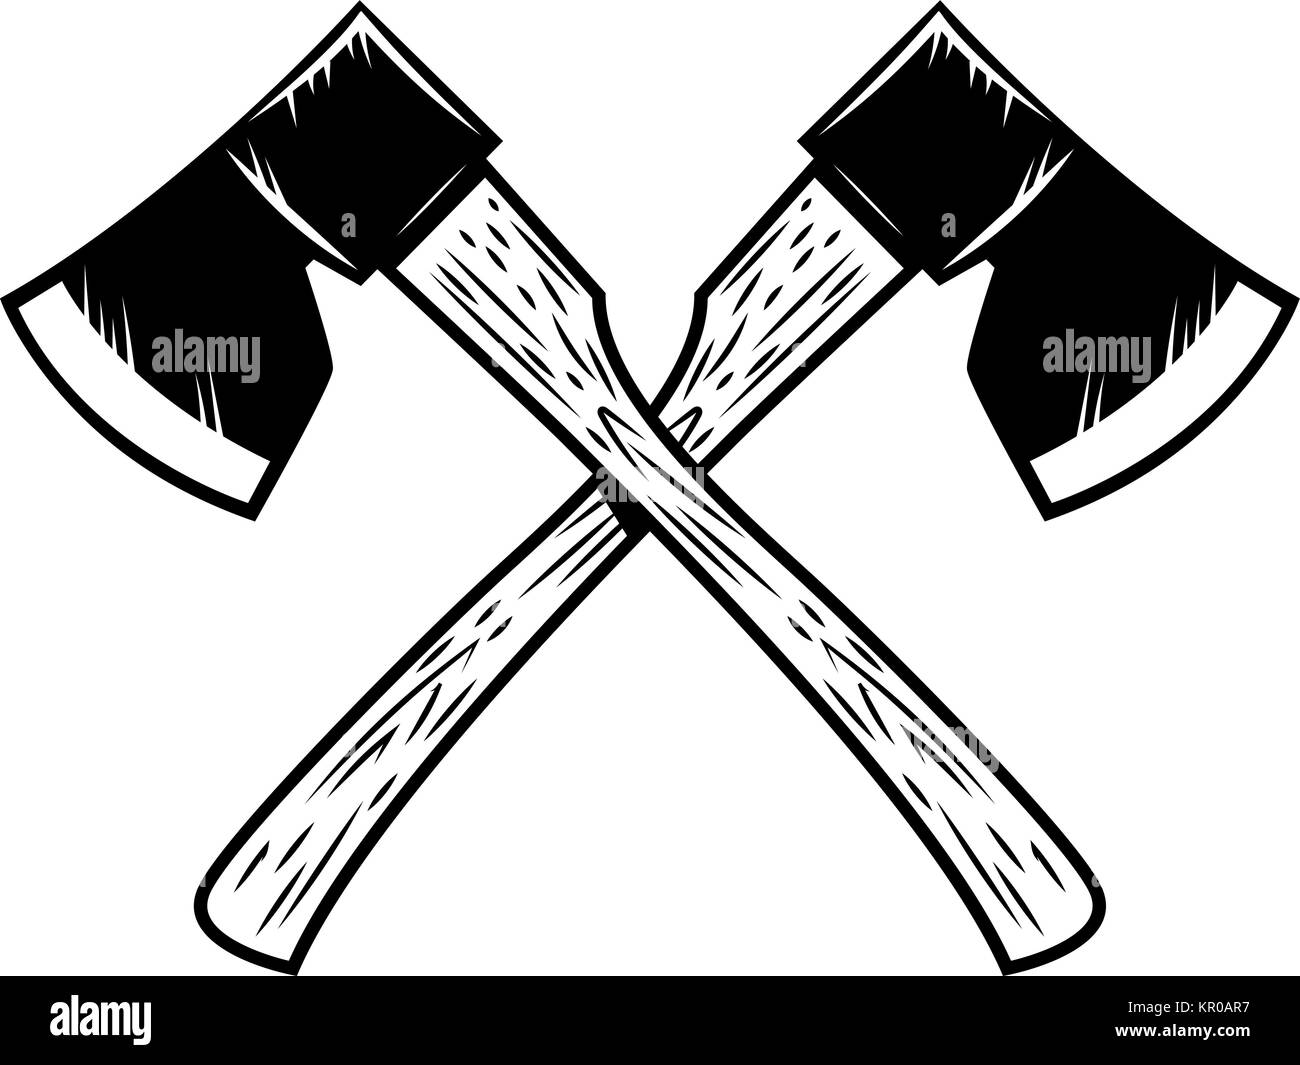 cartoon lumberjack illustration cut out stock images pictures alamy  crossed lumberjack axes isolated on white background design element for poster emblem sign